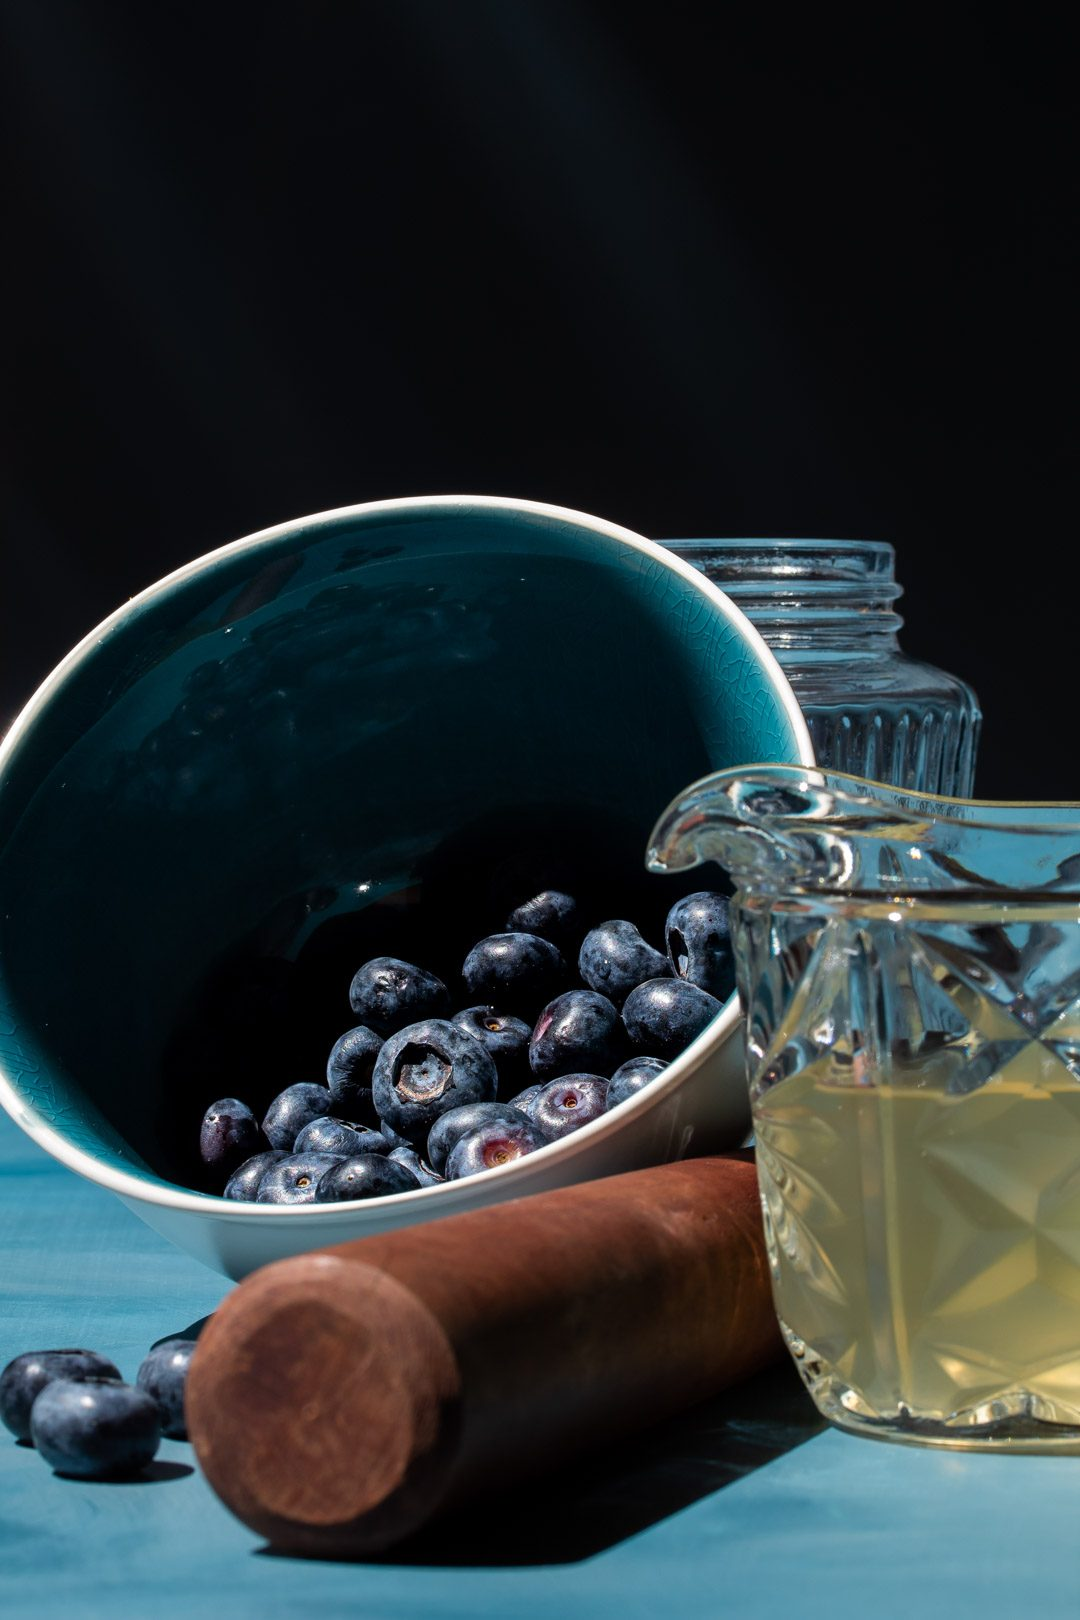 making blueberry shrub syrup with blue bowl of blueberries and cut glass vintage jug of coconut vinegar